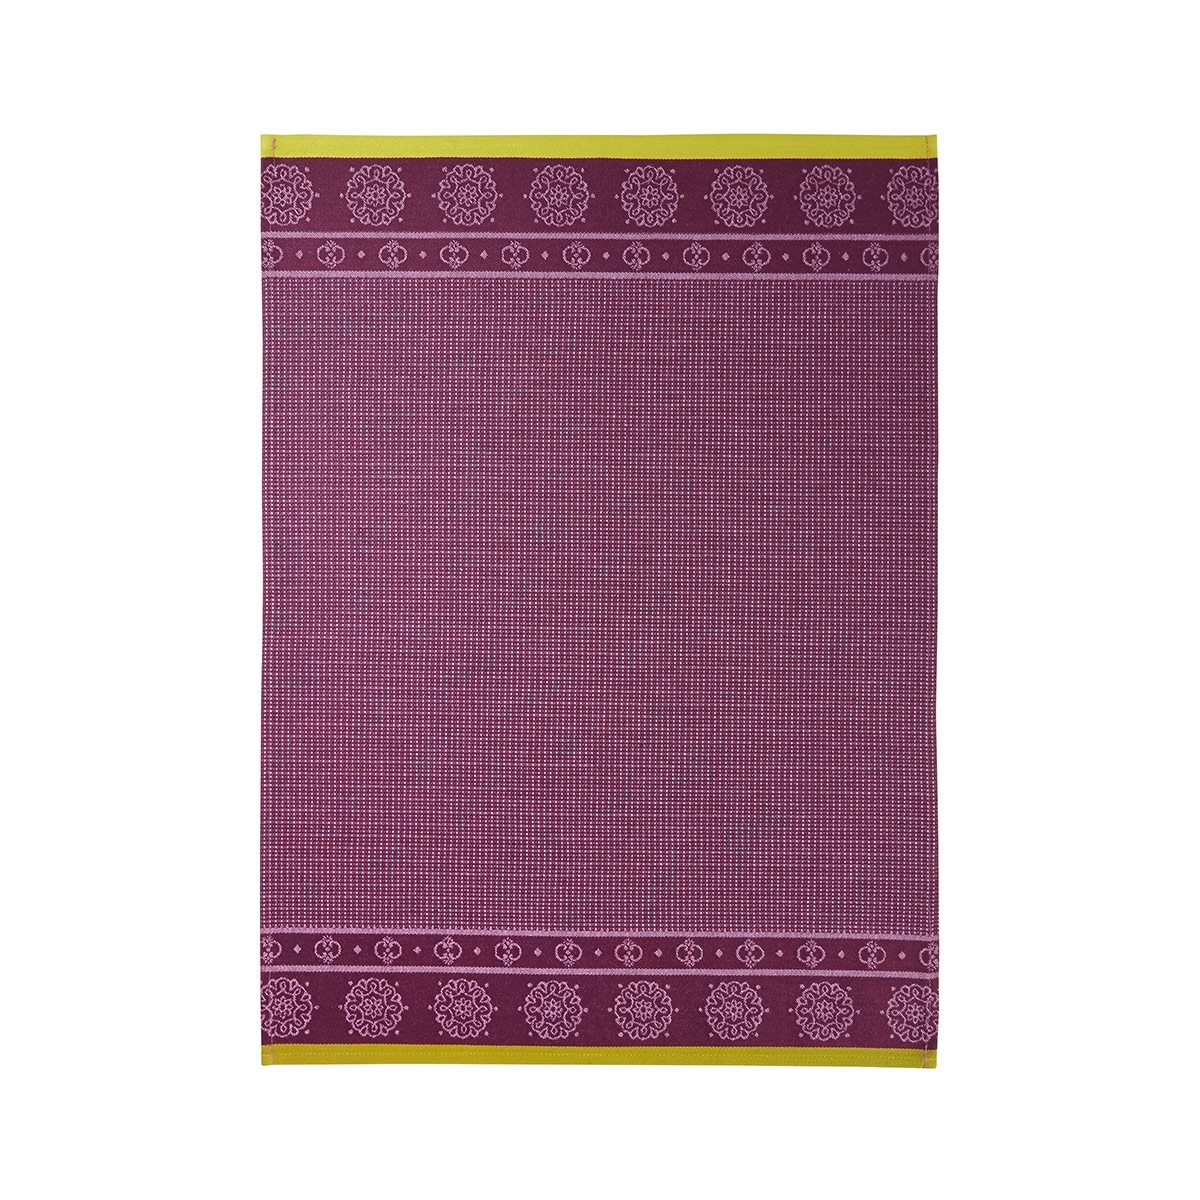 Soiree Waffle Weave Tea Towel by Yves Delorme